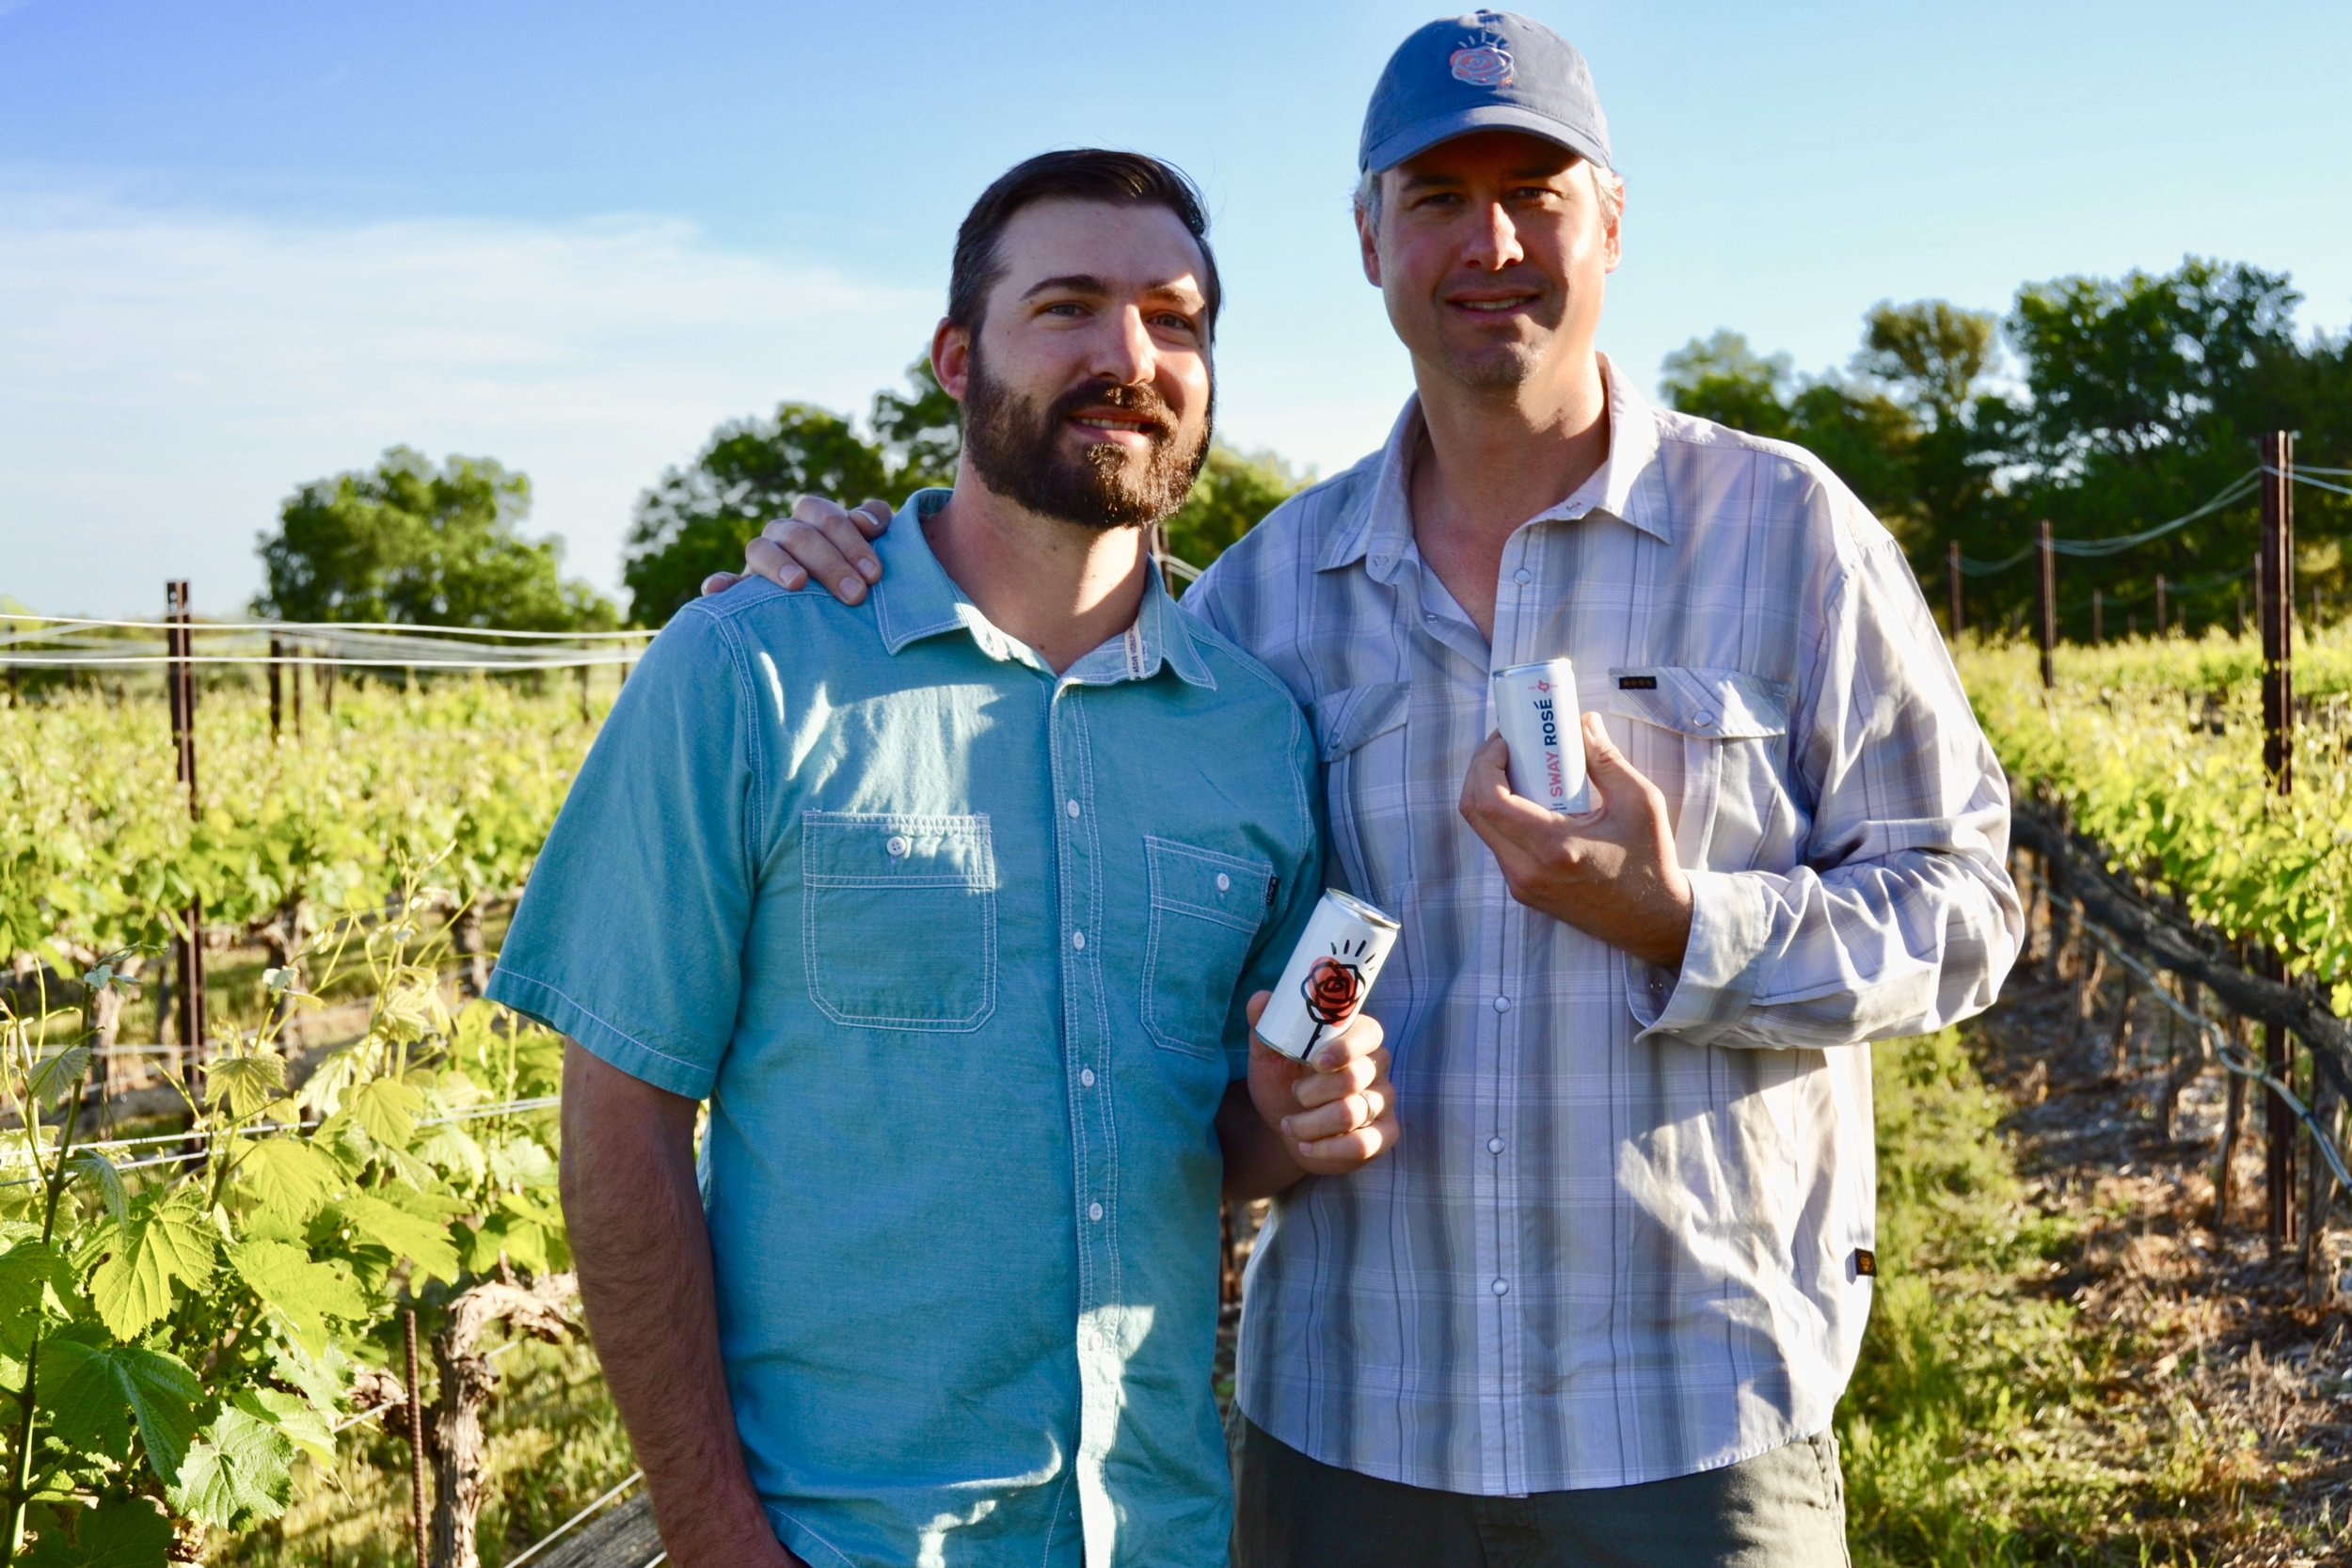 Founders and winemakers Andrew Sides and Chris Brundrett